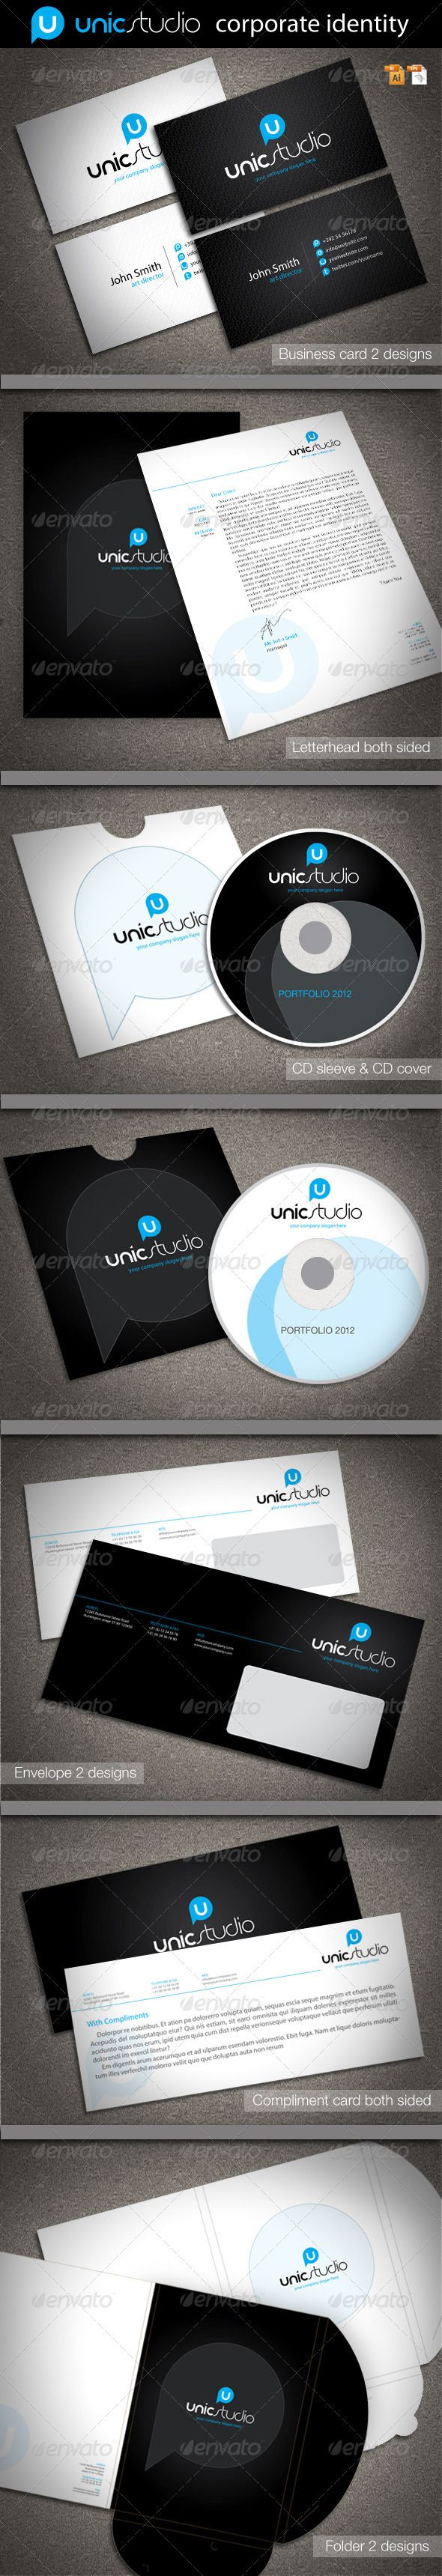 Unic Studio Corporate Identity  Corporate Identity Stationery